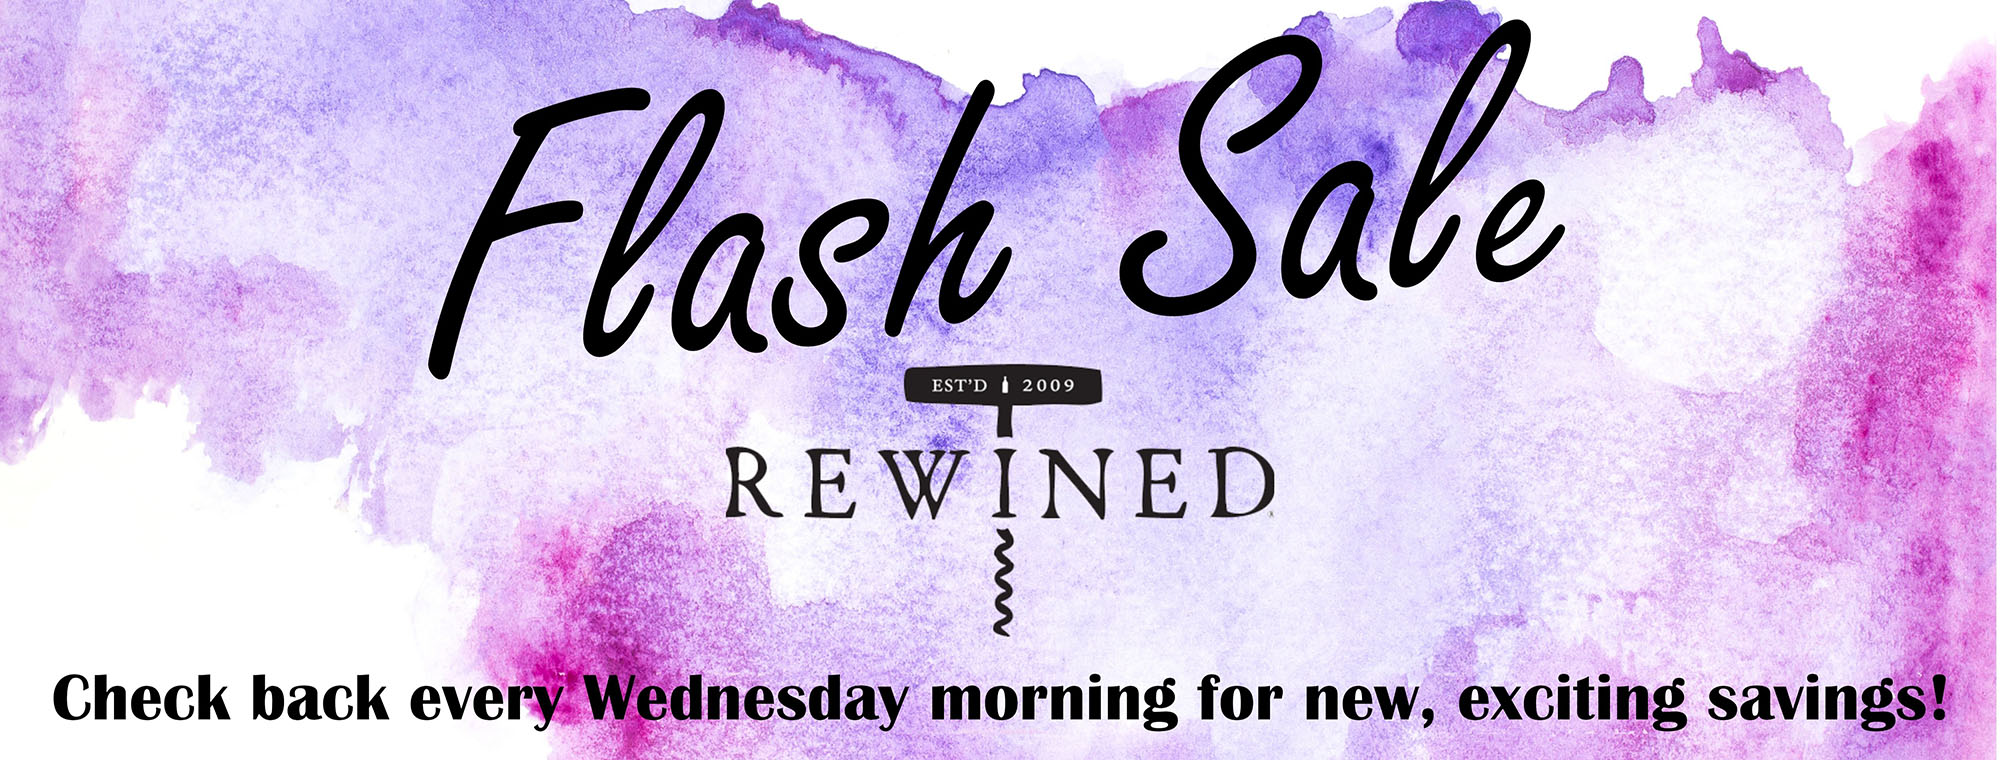 rewined candle flash sale